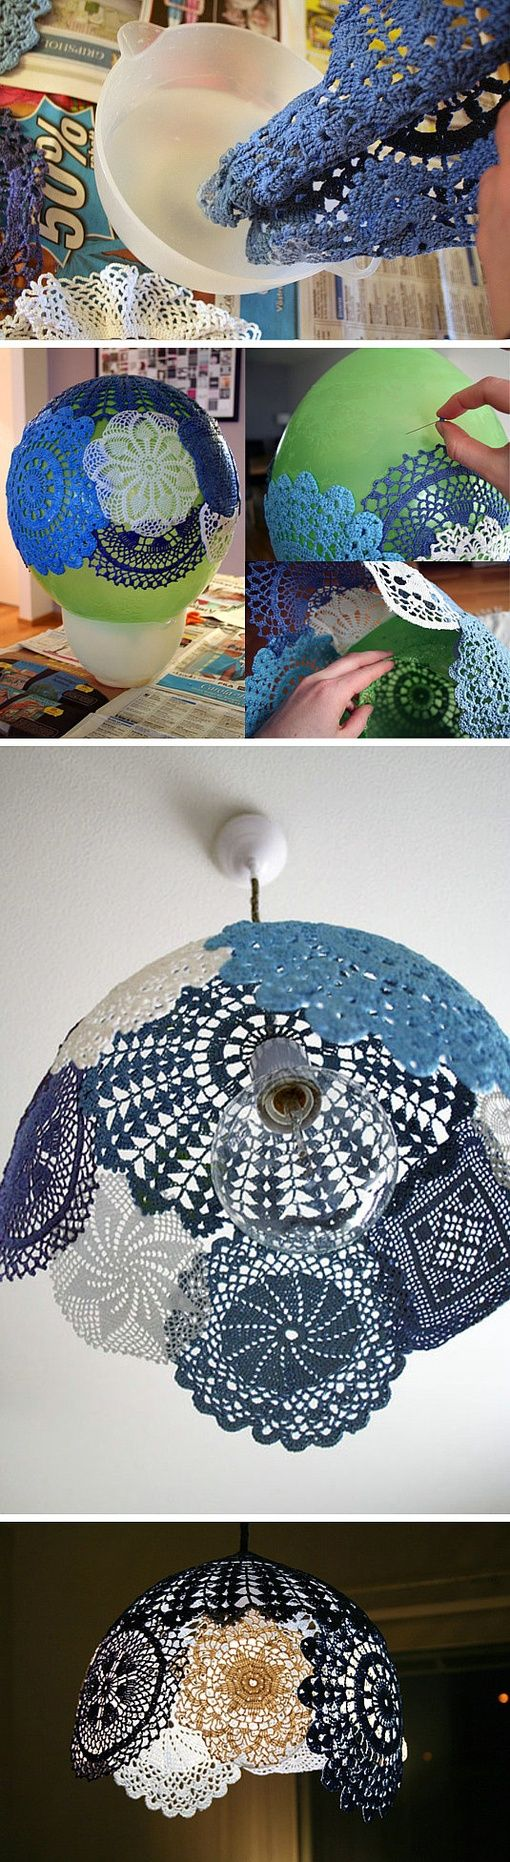 Interesting, cool lampshade idea. The idea could be adapted for different looks. @ Home Ideas and Designs